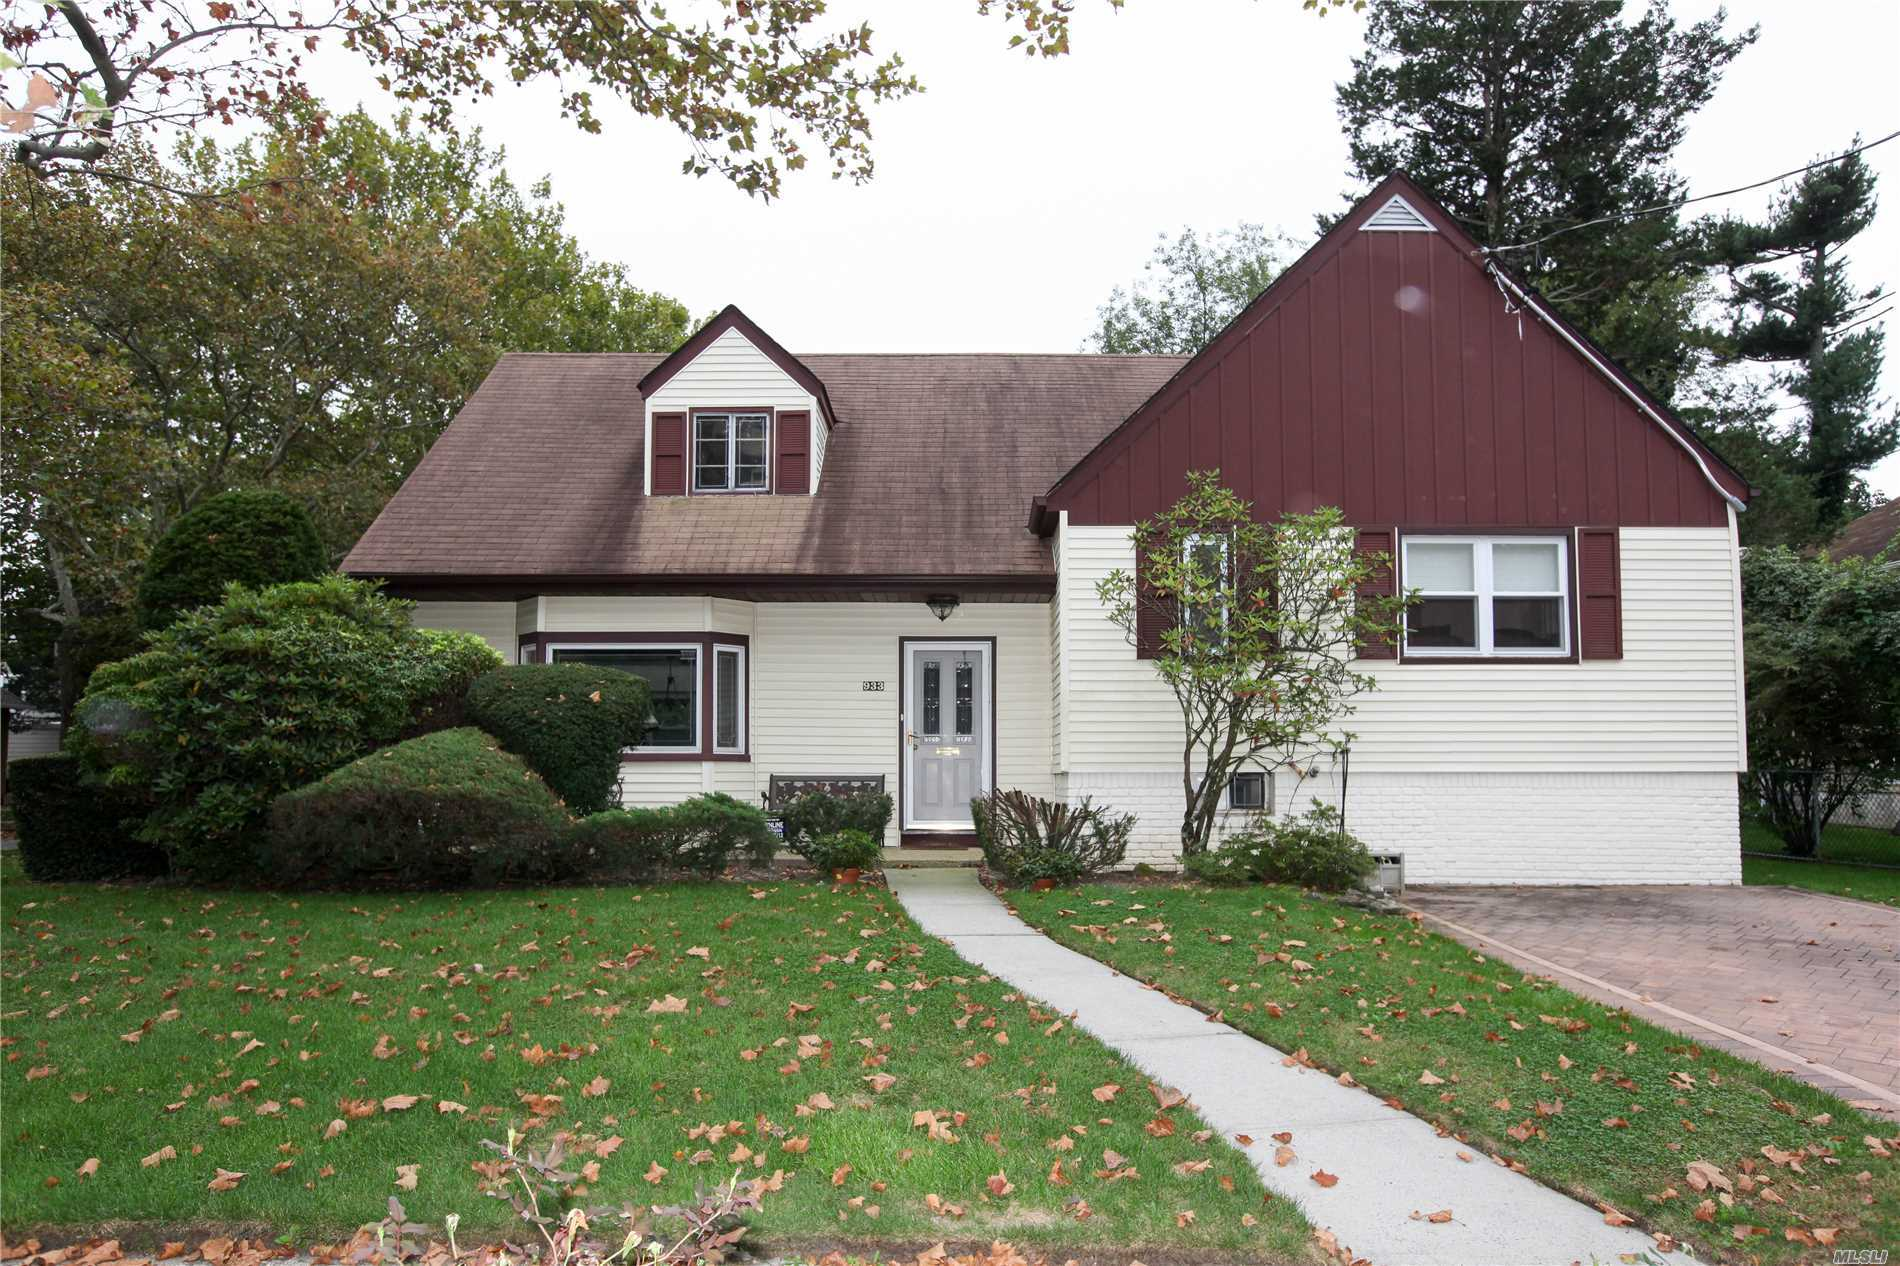 Beautiful Split Level Home In Mint Condition On An Oversized Corner Lot.Move In Ready!3/4 Bedrooms With A Master Suite, 2 Full Bathrooms, Eat In Kitchen, High Ceilings, Finished Basement/Den With Bonus Room, Low Taxes For Sd#14, Lot Is 92X89, Quiet Block, New Patio,  Unfinished Attic With Full Stairs (Possible 2 Bedrooms Or Master Suite), Lots Of Room To Expand, A Must See!!